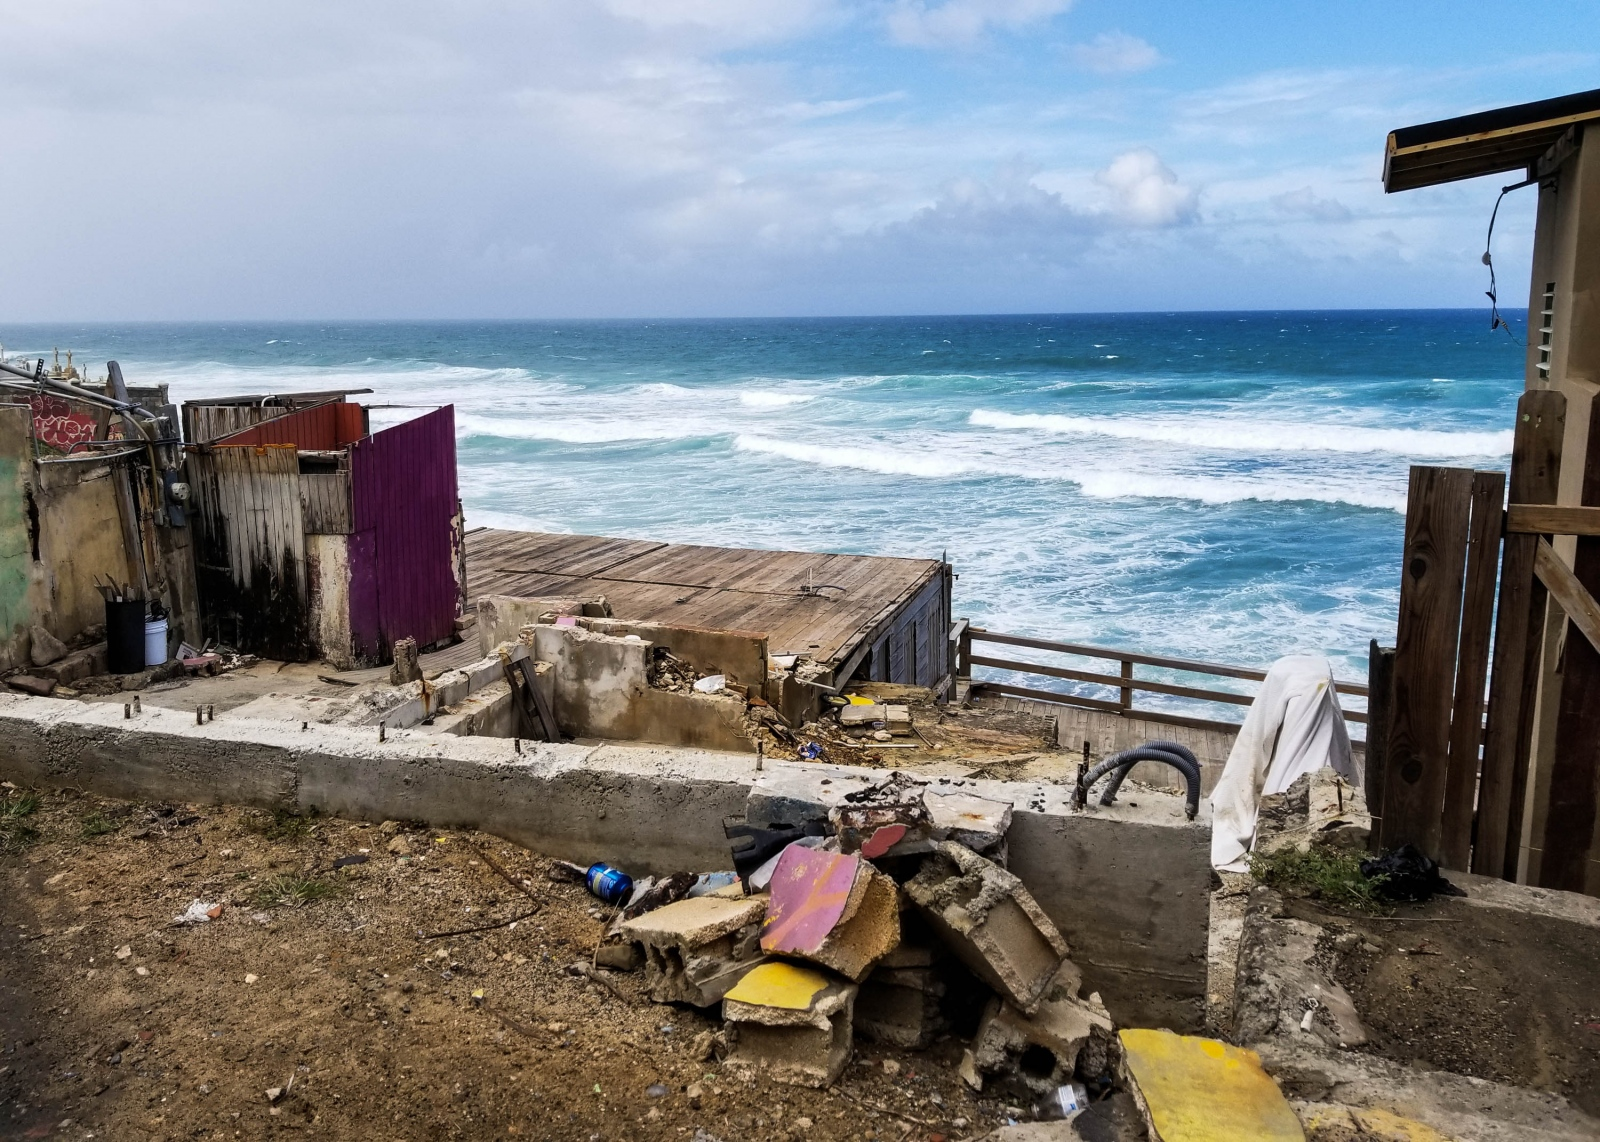 Over a year after Hurricane María, homes continue to be in ruins on the shores of San Juan, Puerto Rico.